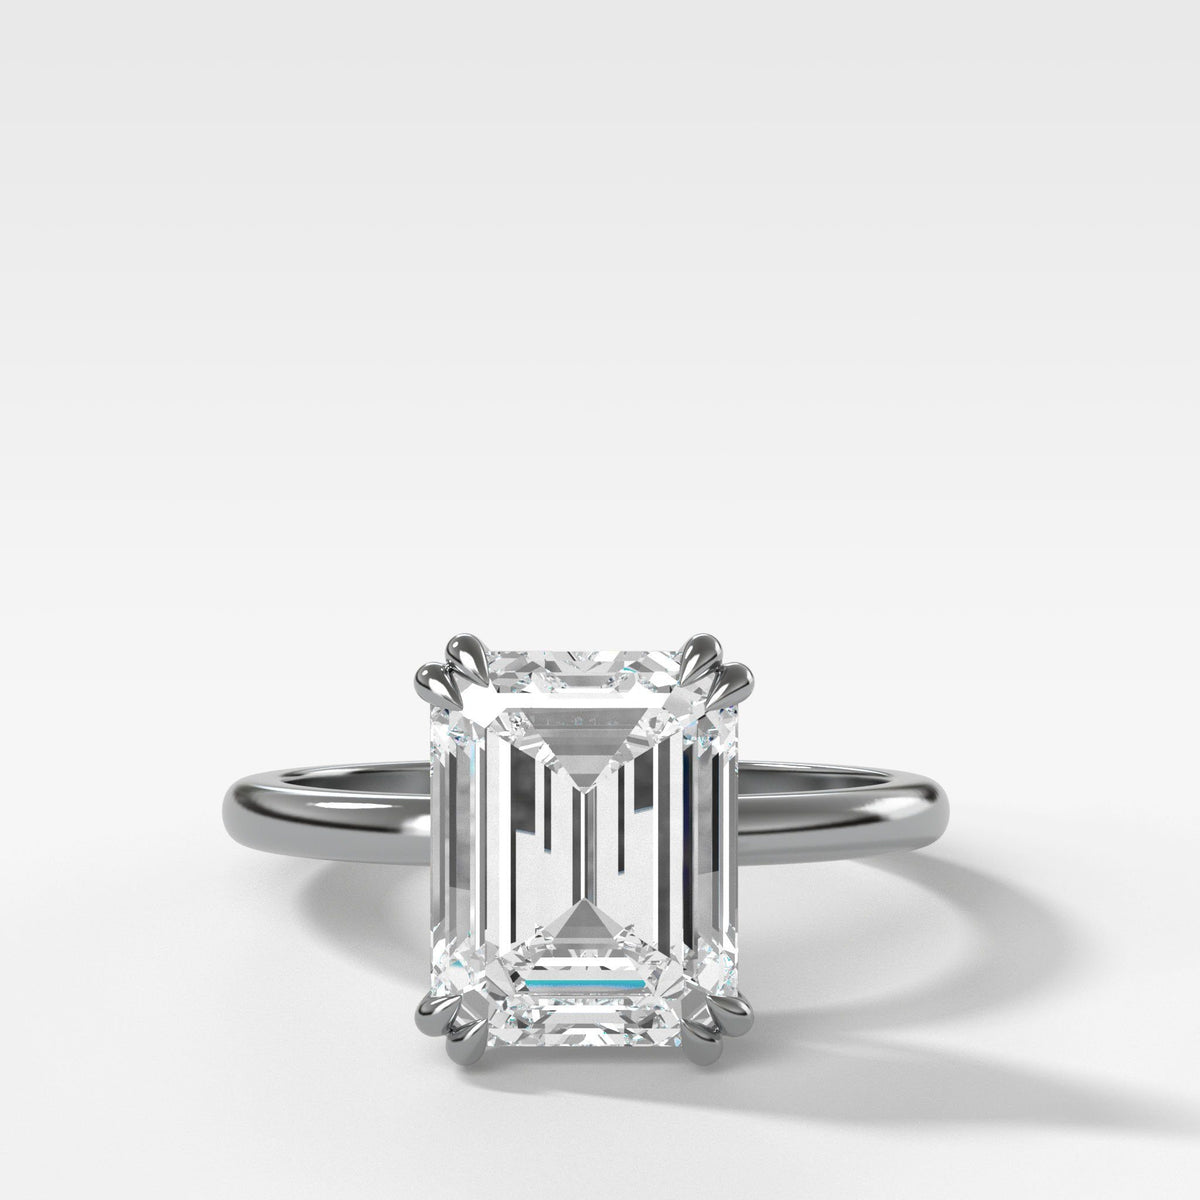 Signature Cathedral Solitaire With Emerald Cut (North South) in White Gold by Good Stone